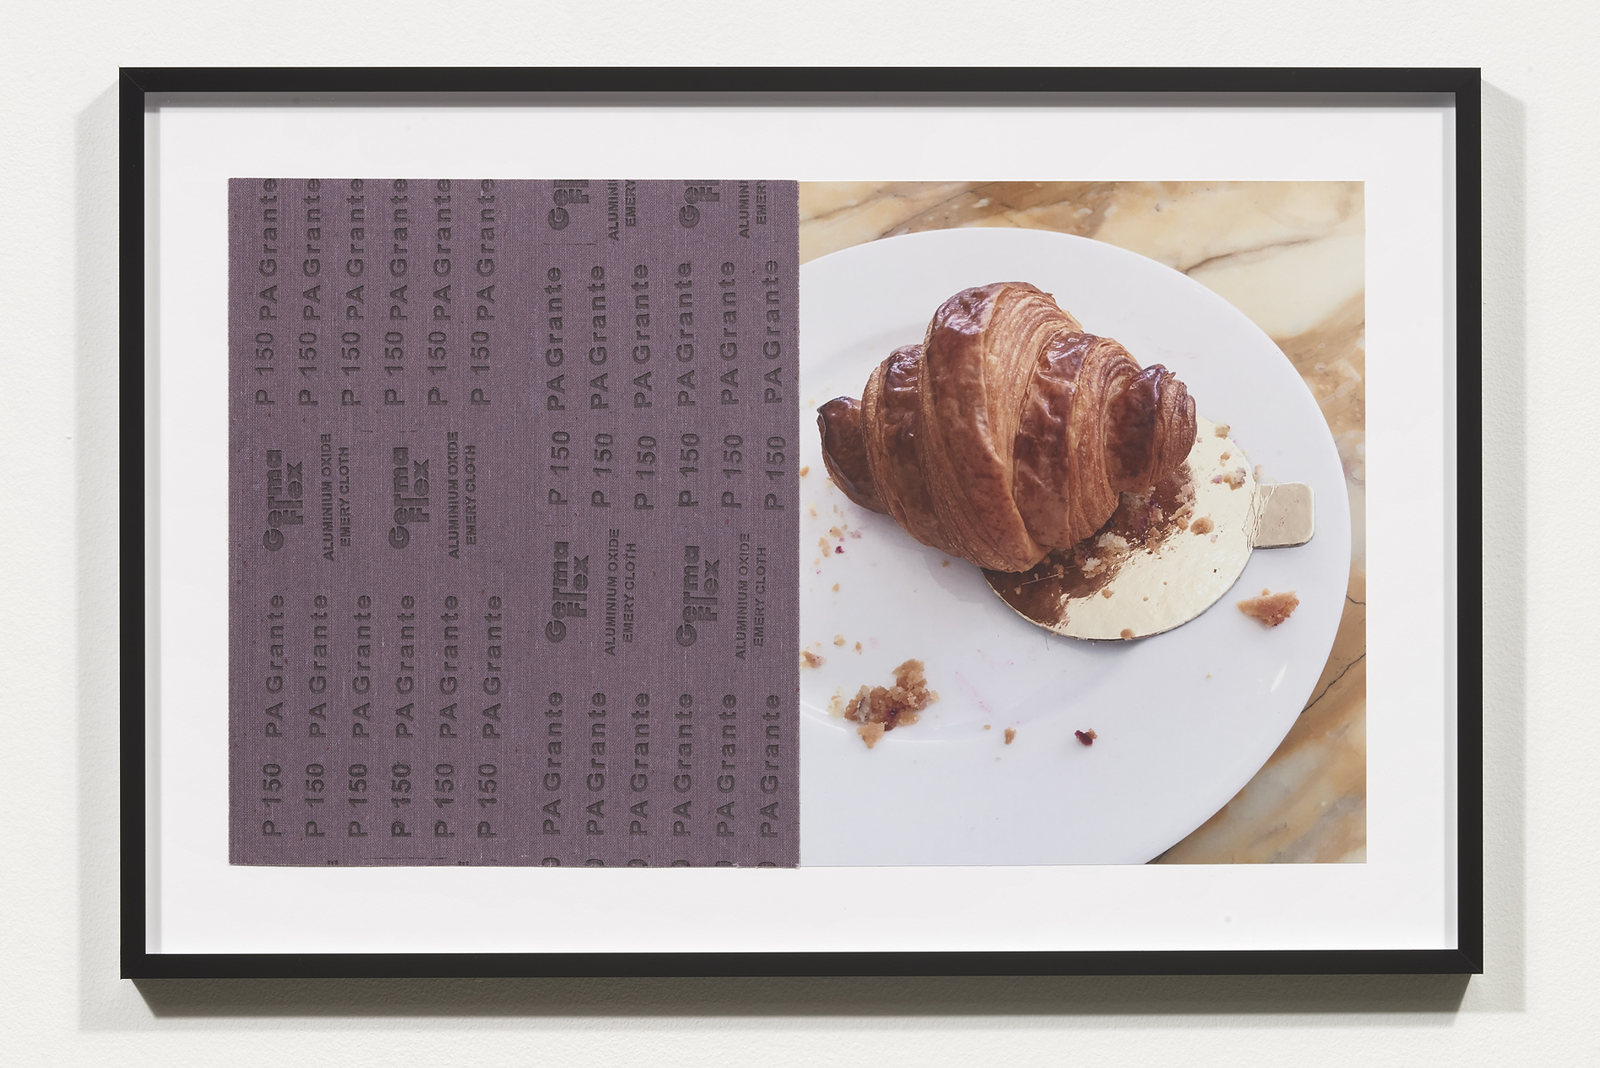 Wermers_Croissants & Architecture #3, 2016_C-print, sandpaper sheet, framed_14 3_8 x 21 1_2 in_NW00044PG